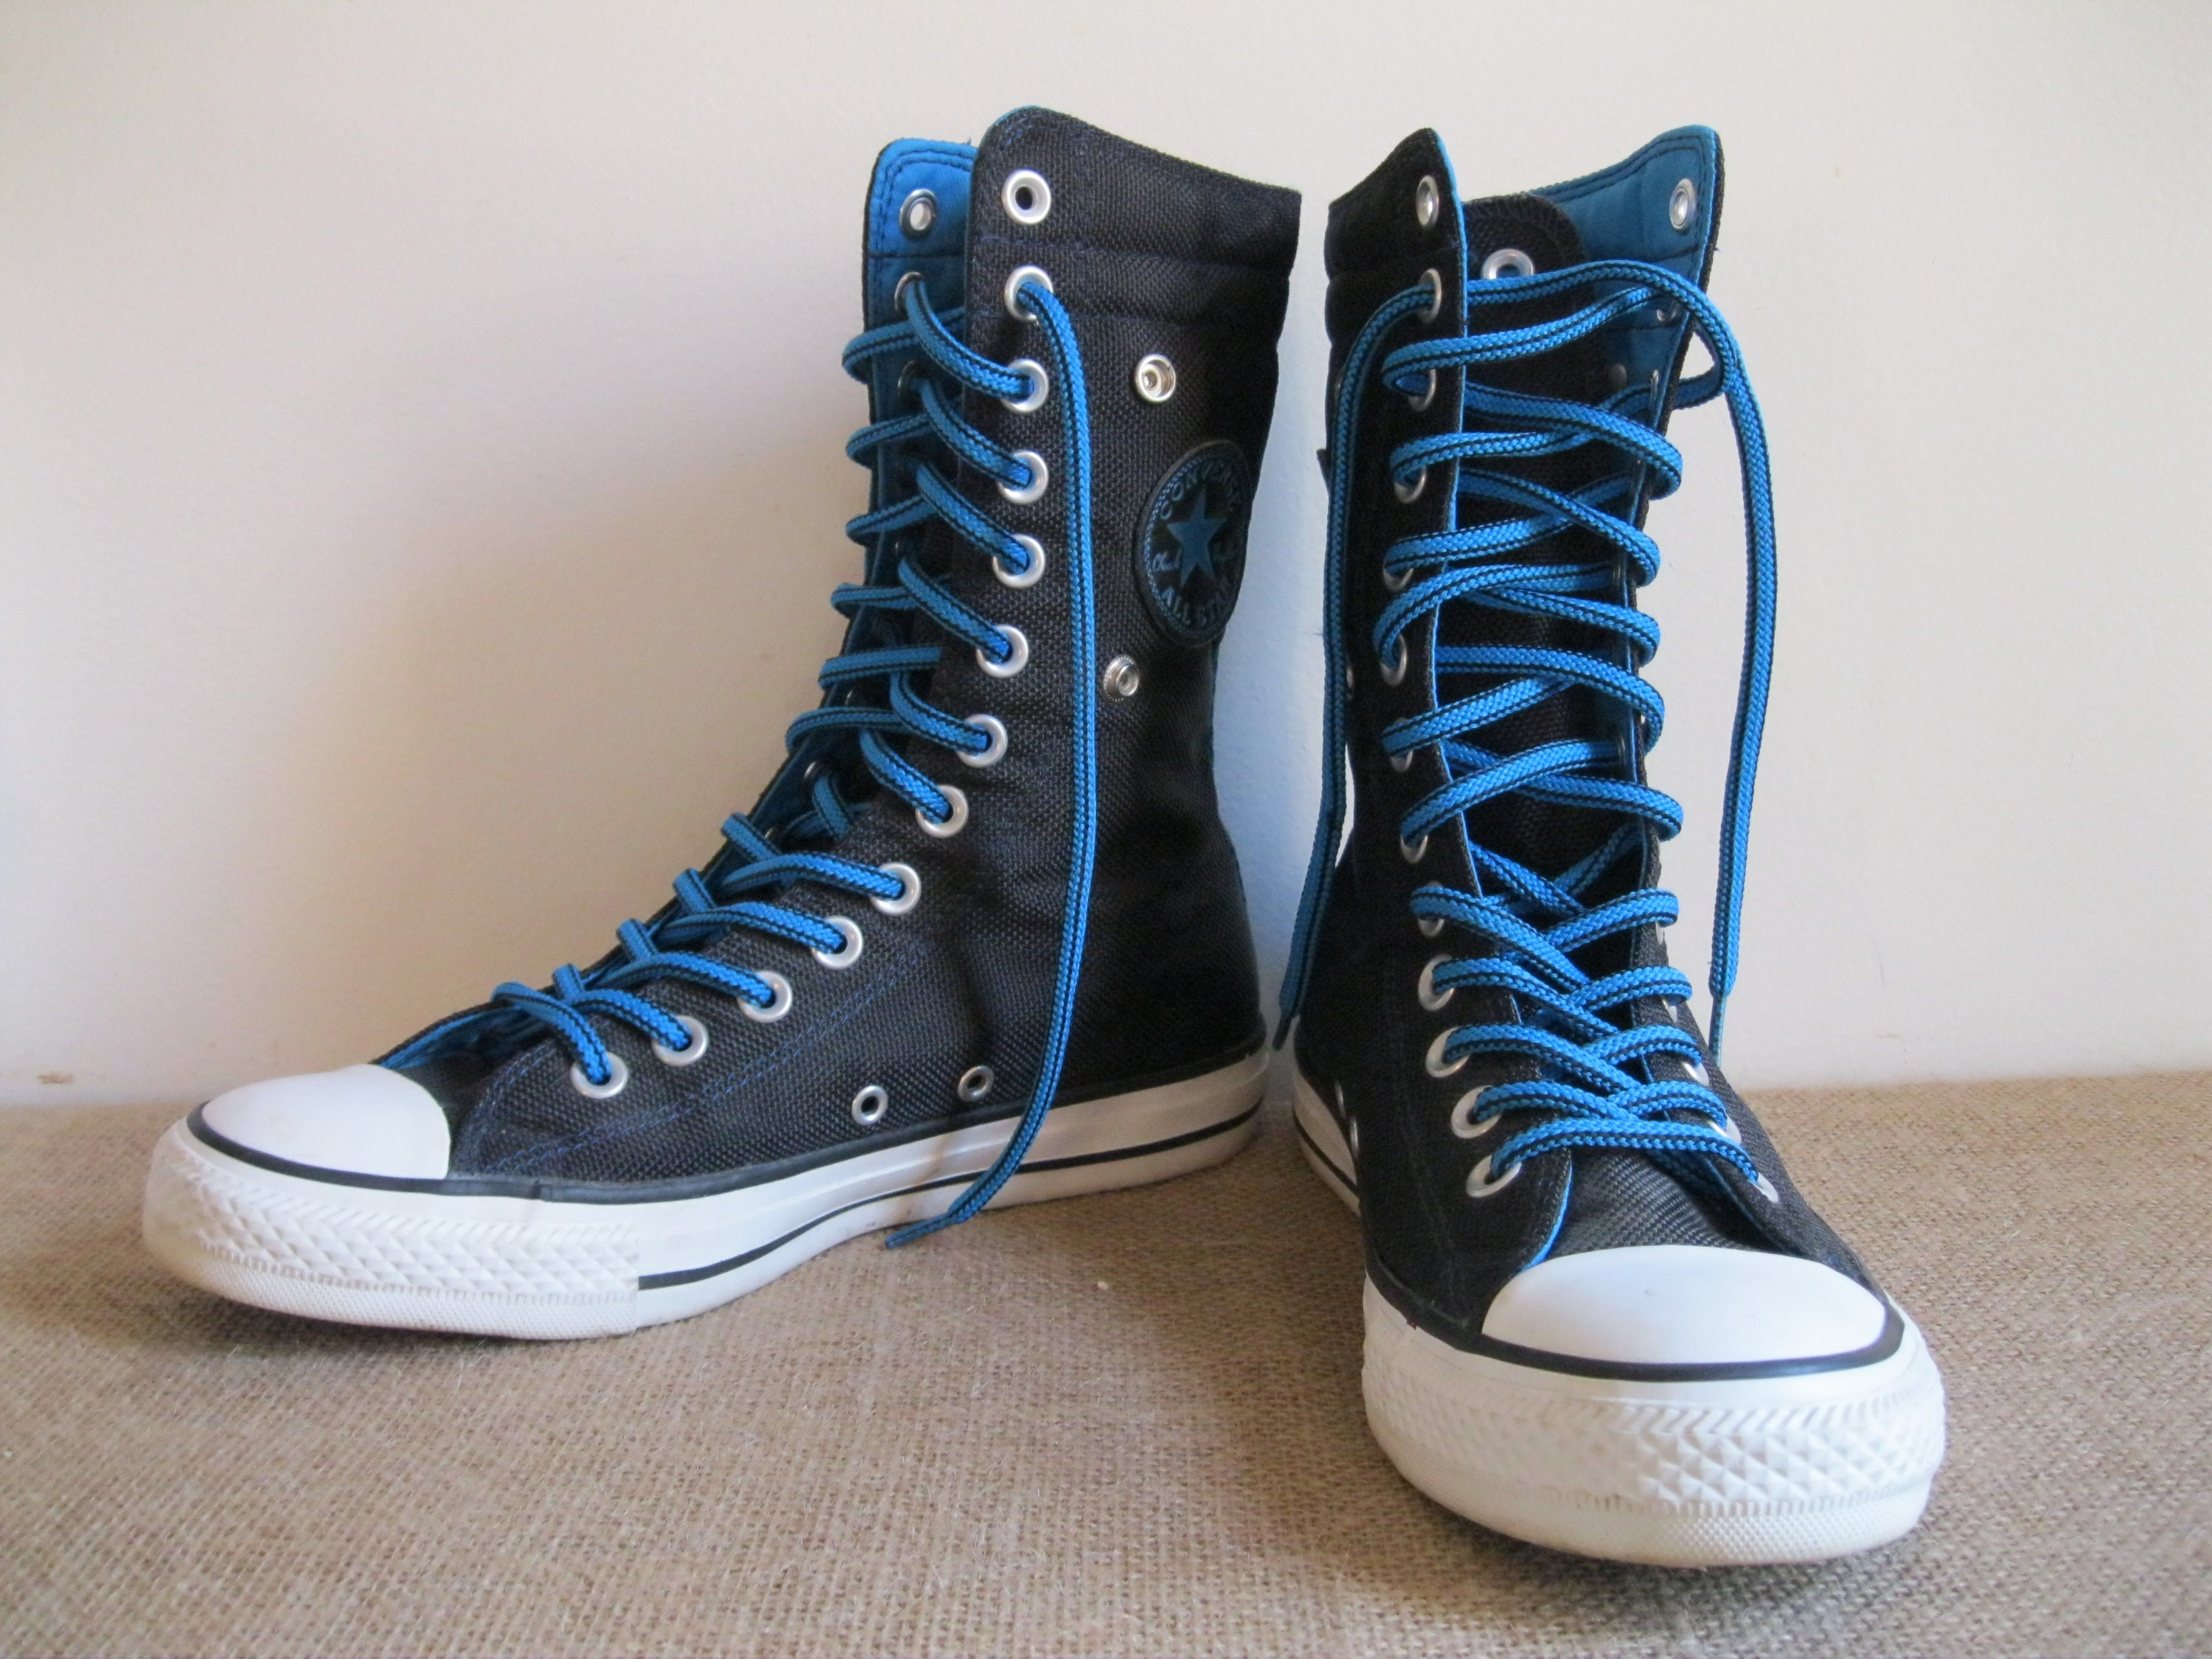 Vintage Converse All Stars Boot Cuff Zapatillas Zapatillas Zapatillas Chuck Taylor negro & Turquoise XHi Tops 13 Eyelets Good Condition...Reshopgoods 5f268e